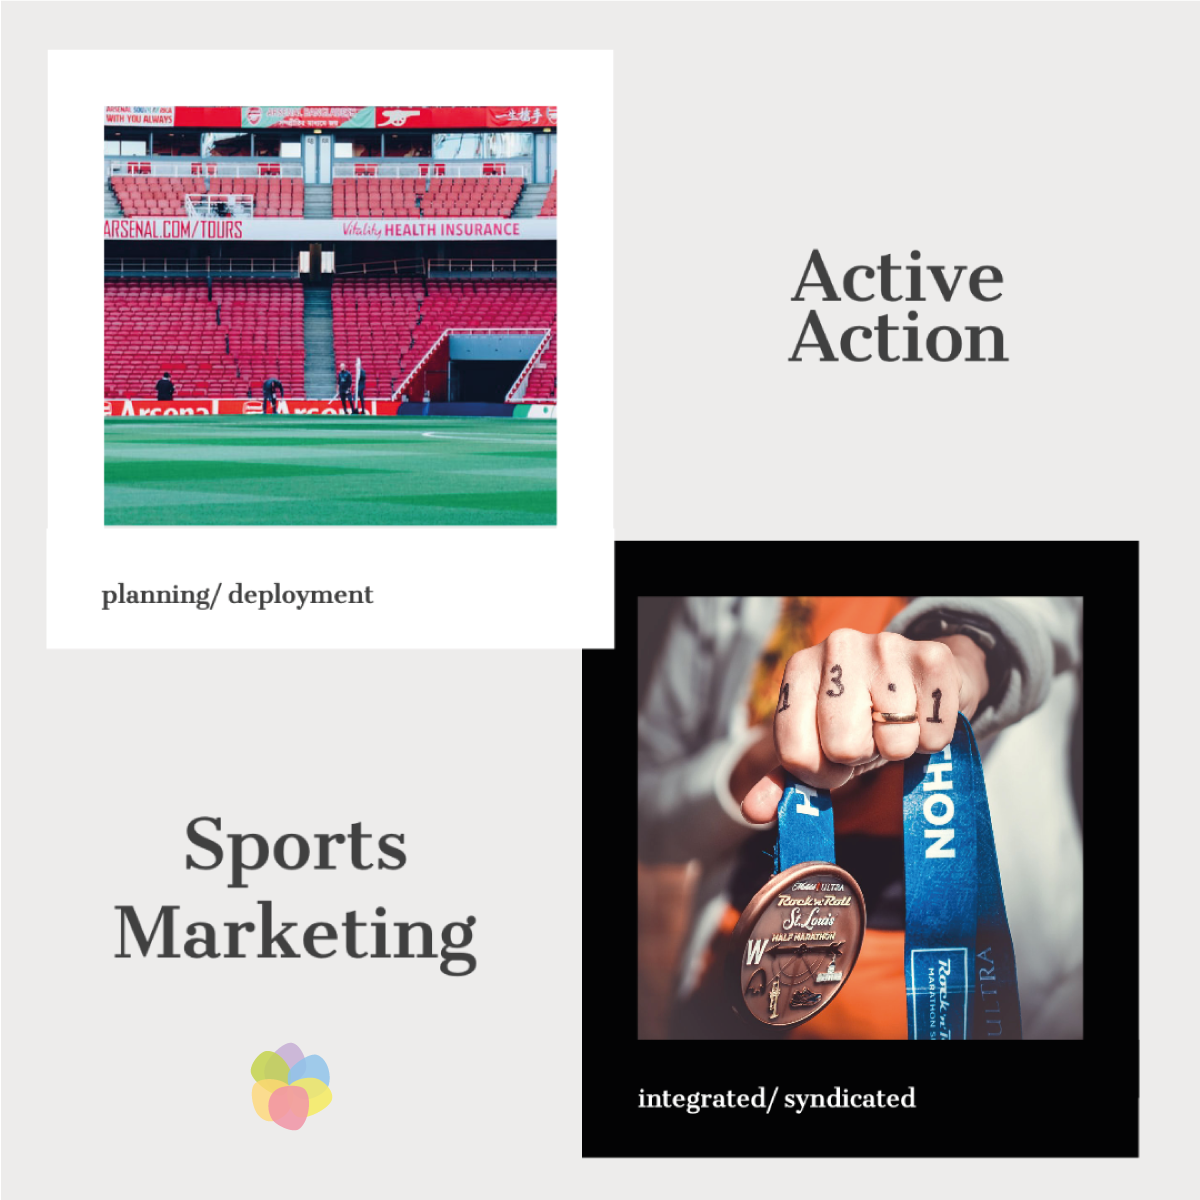 The sports bug inside us enables our end-to-end sports marketing solutions. Let's talk! #OpenForBusiness  #Sports #SportsMarketing #Strategy #SportsMarketingStrategy #ExperientialMarketing #Advertising #AdvertisingIndia #AdvertisingLife #Huddlers #WeHuddle #HuddlersOriginalpic.twitter.com/SP9q990v3b